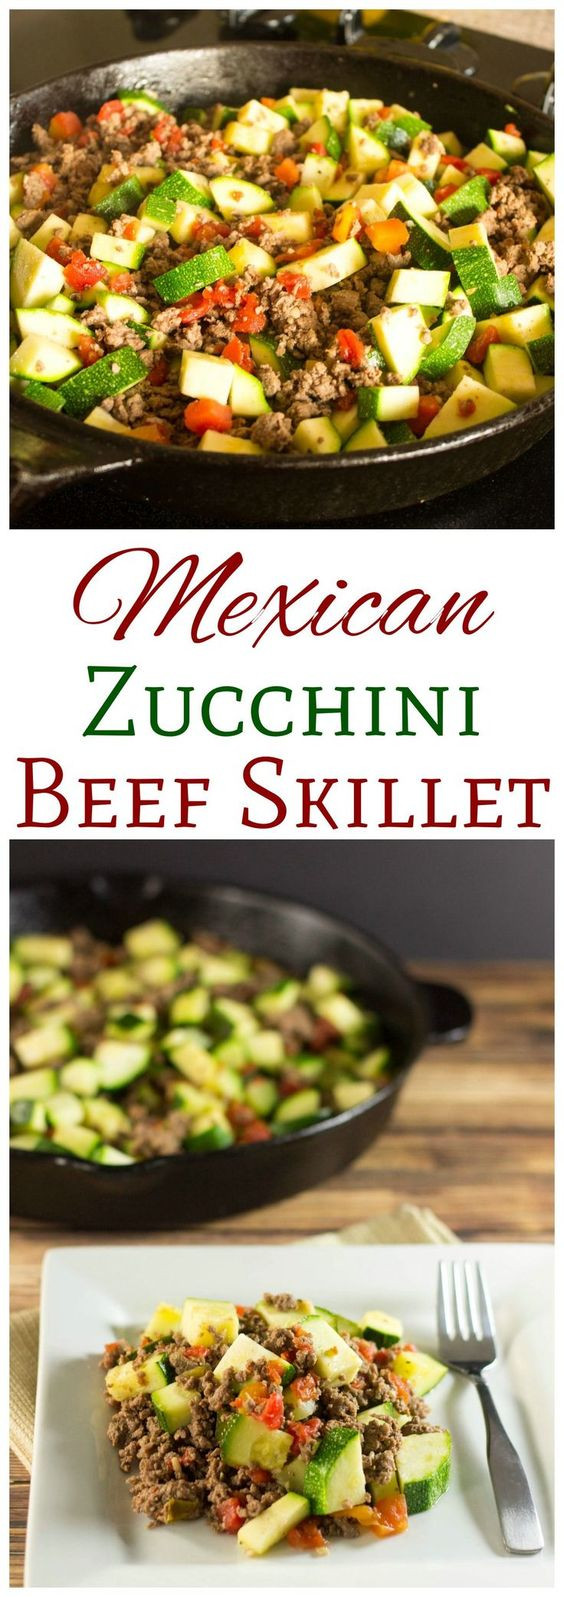 Summer Ground Beef Recipes  Skillets Summer and Ground beef recipes on Pinterest